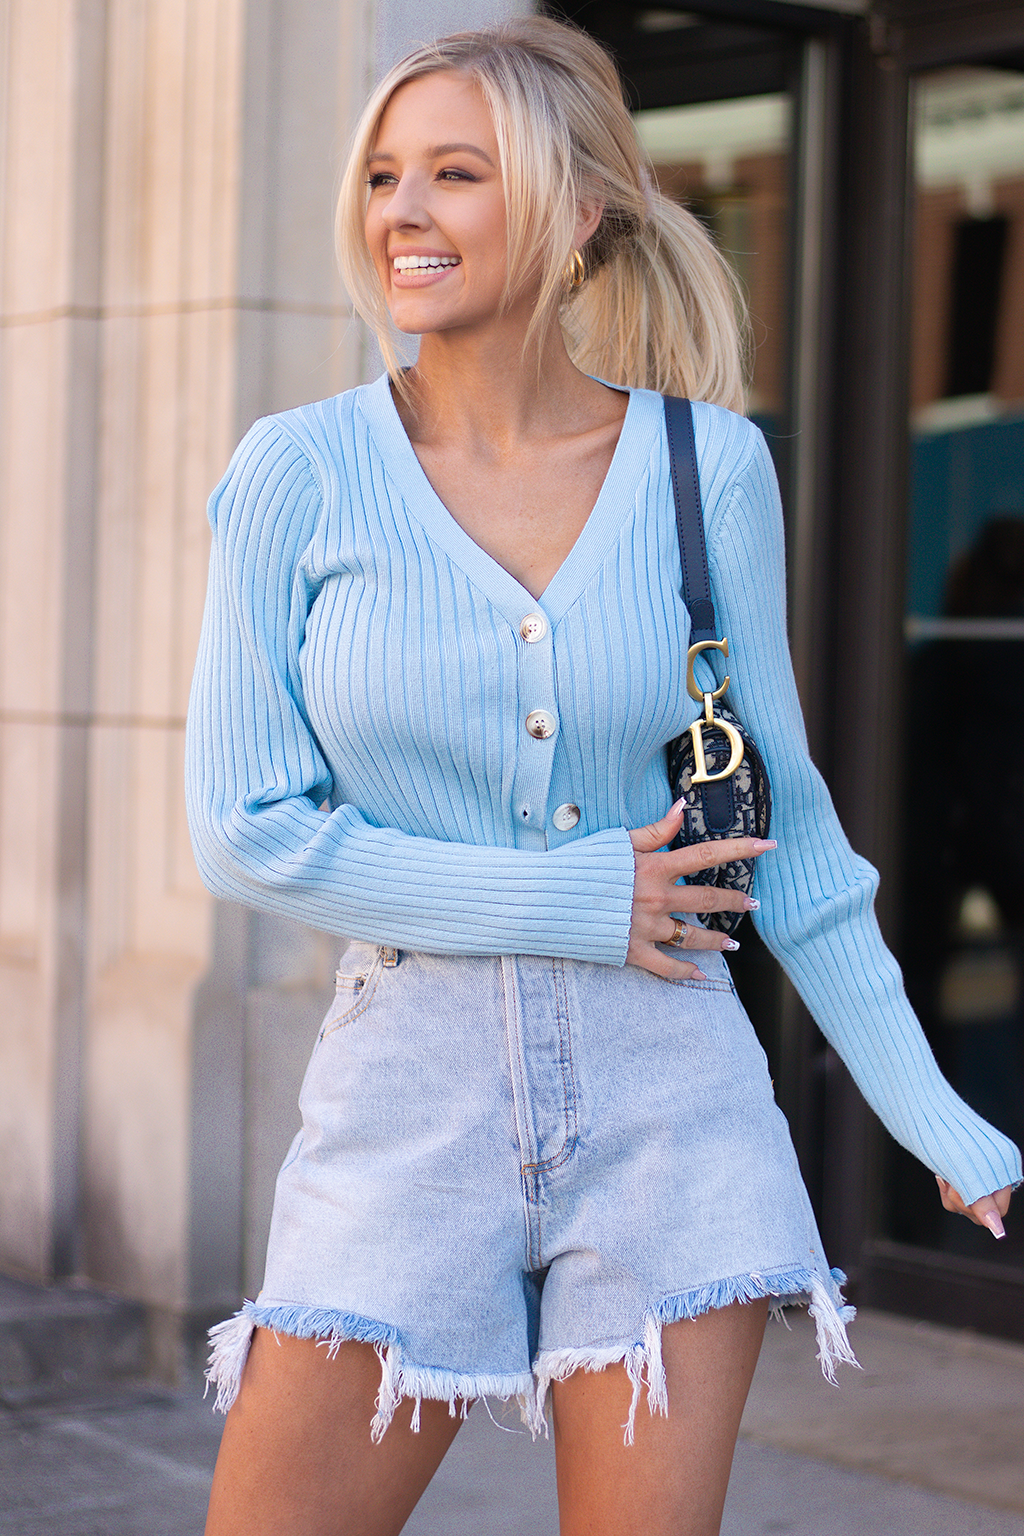 SERIOUSLY IN LOVE WITH THIS BLUE CARDIGAN. THE BUTTON UP DESIGN IS SO FUN AND EFFORTLESS.  -Taylor is wearing a size small -color: blue  -button detailing  -vneck fit  -stretchy material